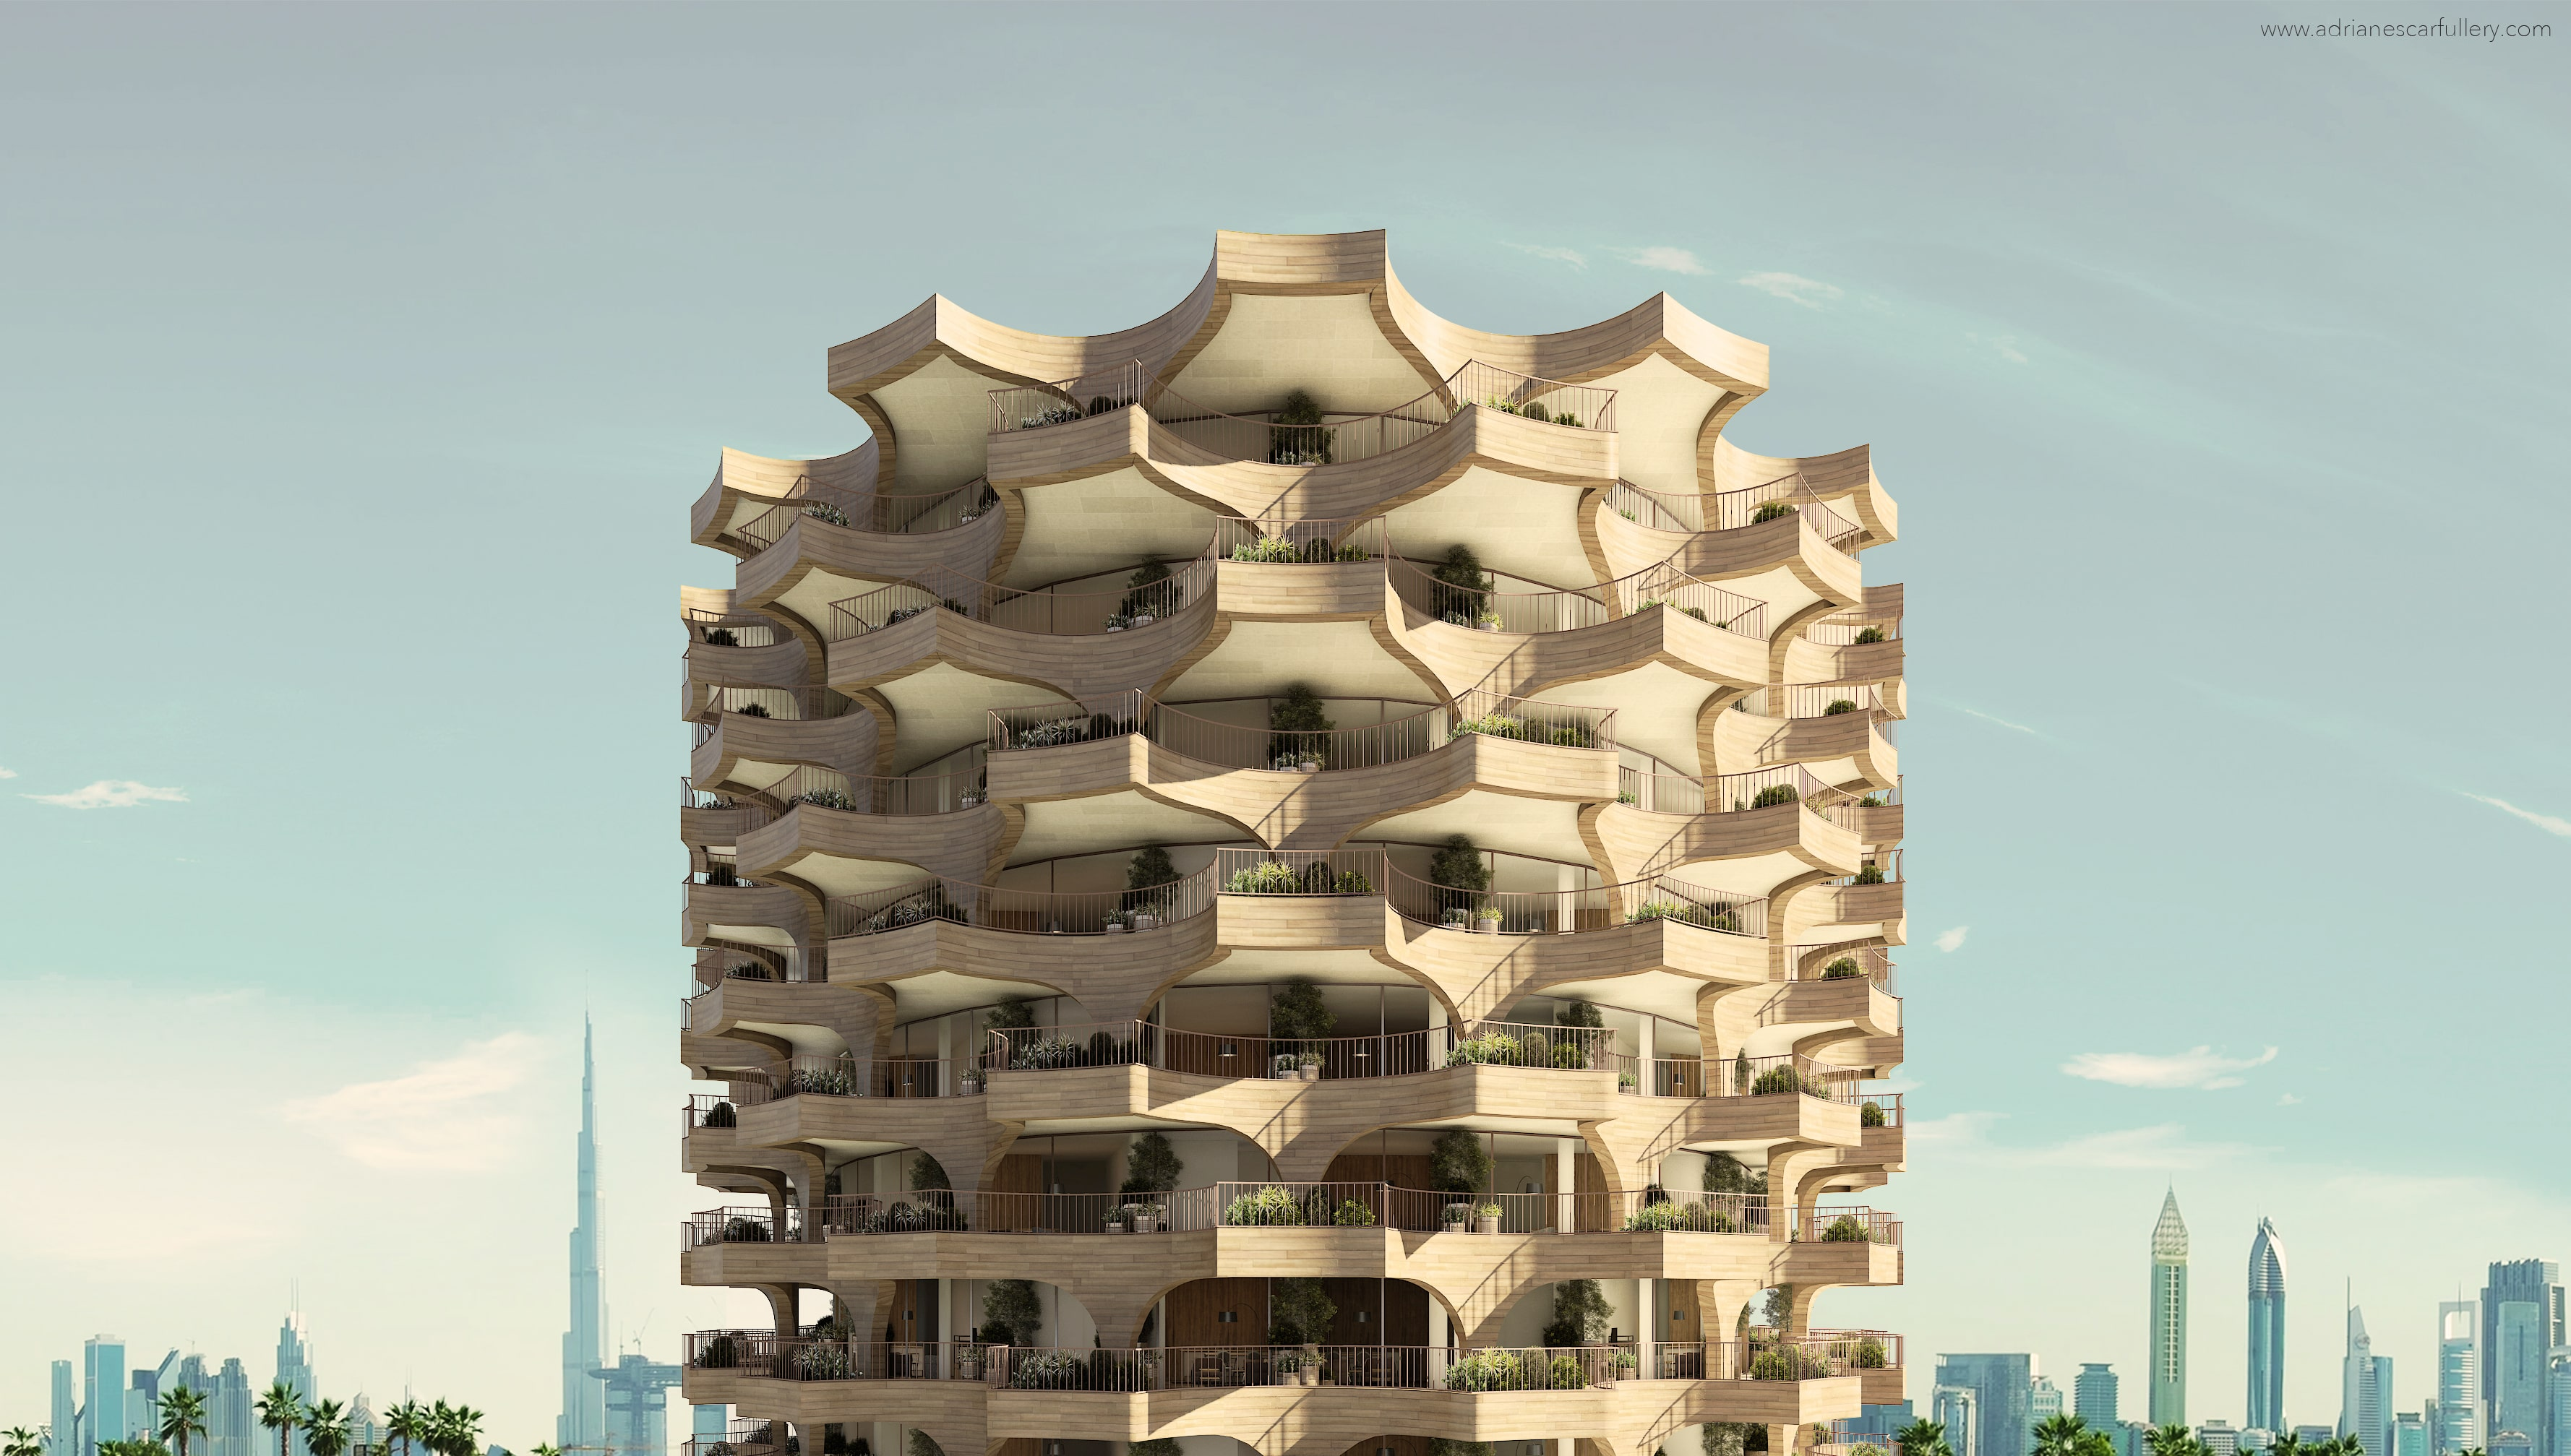 Palm Tower by Adriane Esacrafullery - Creative Work